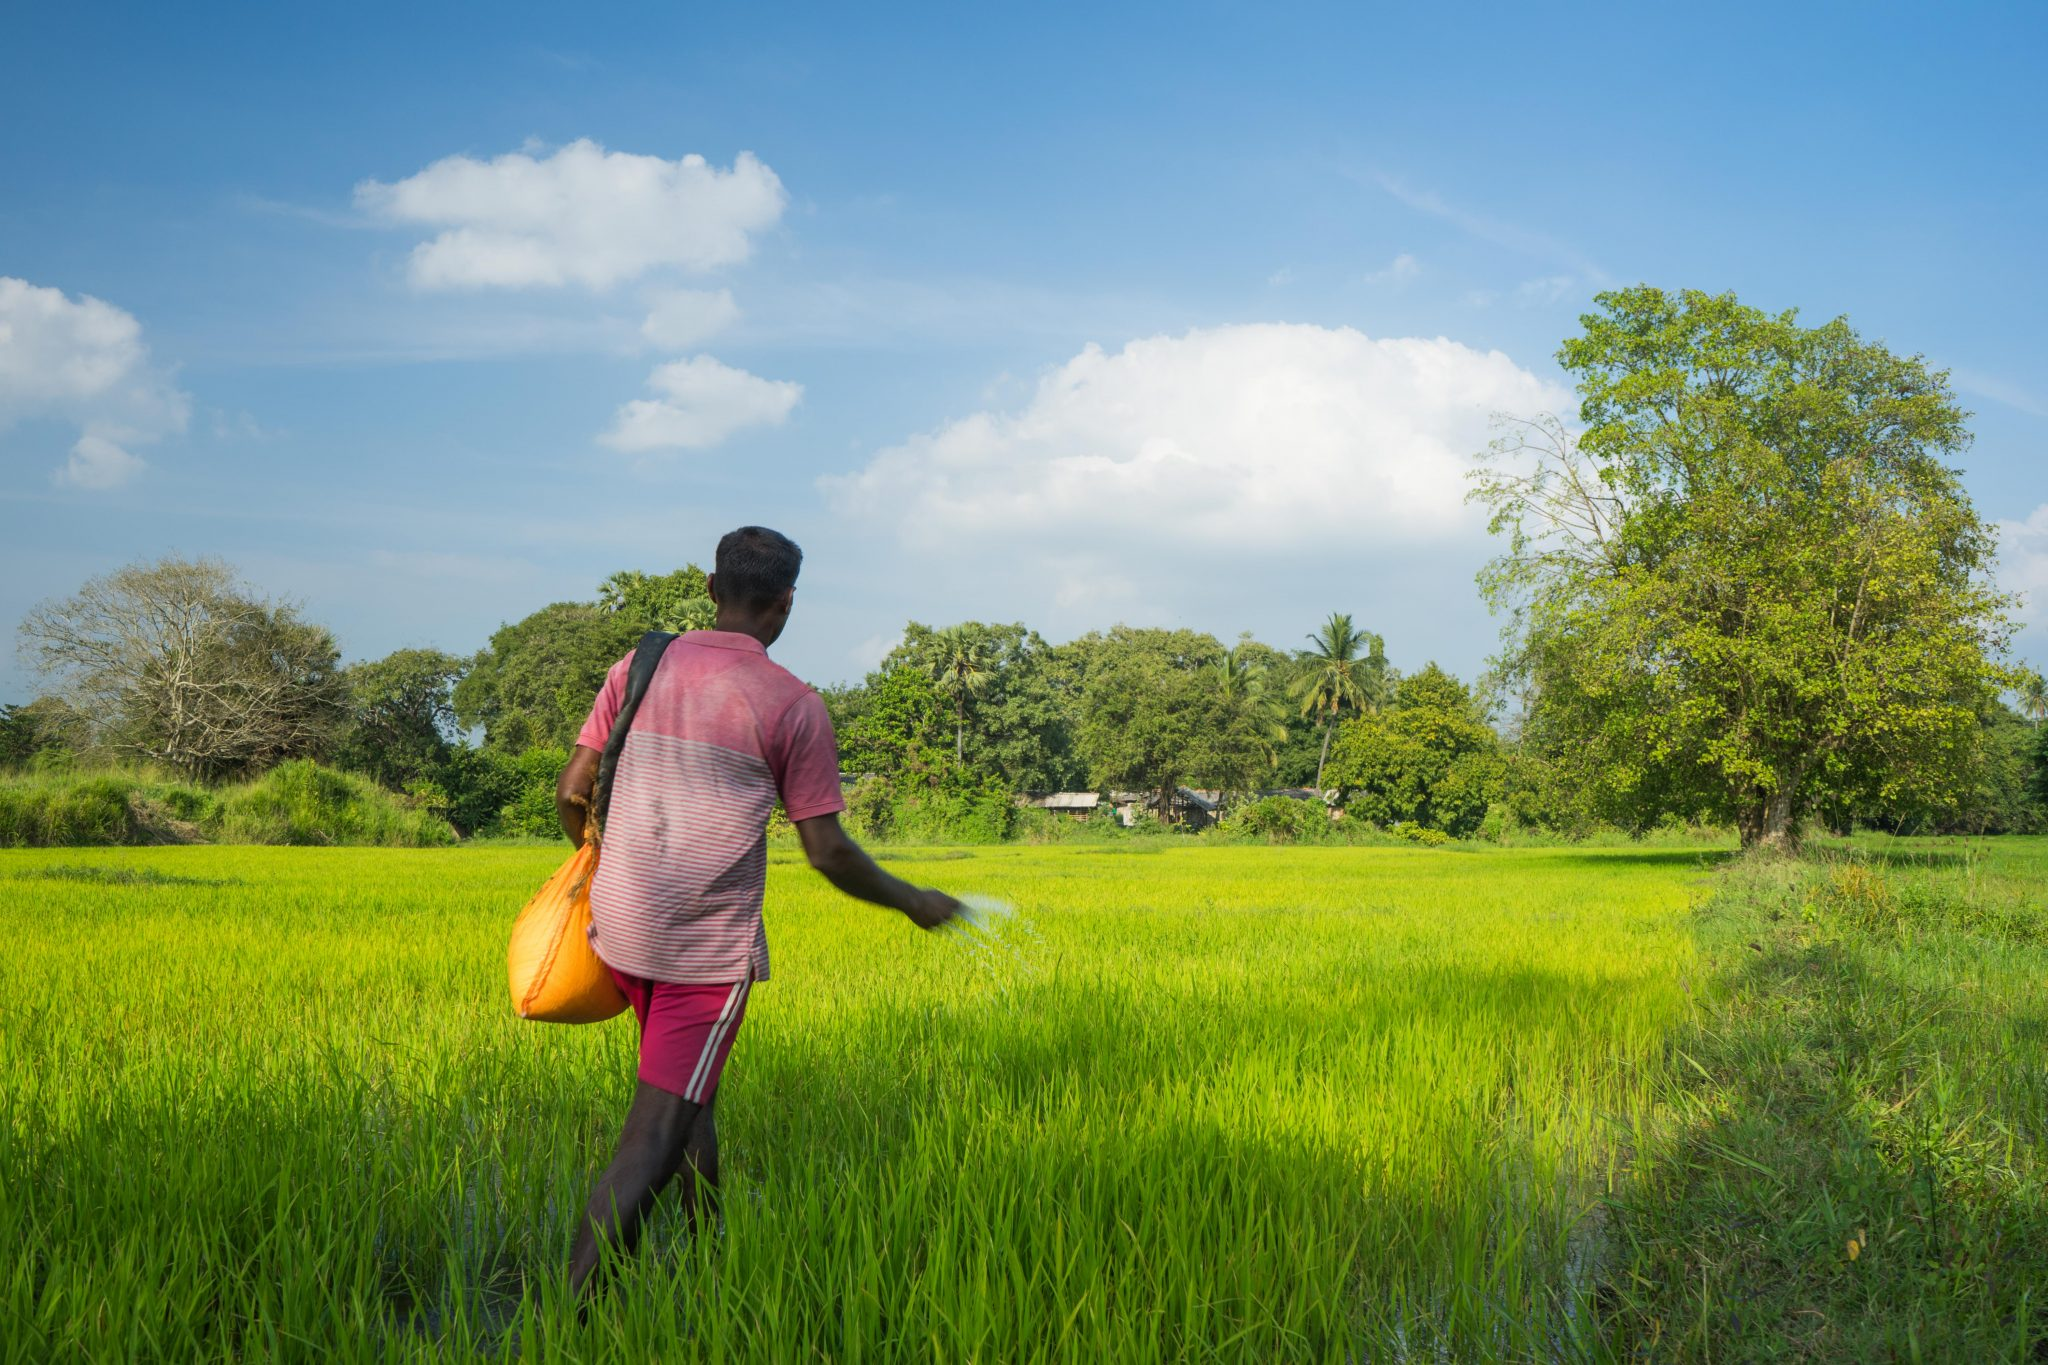 Worker in red shirt throwing fertilizer into an rice field in Anuradhapura, Sri Lanka